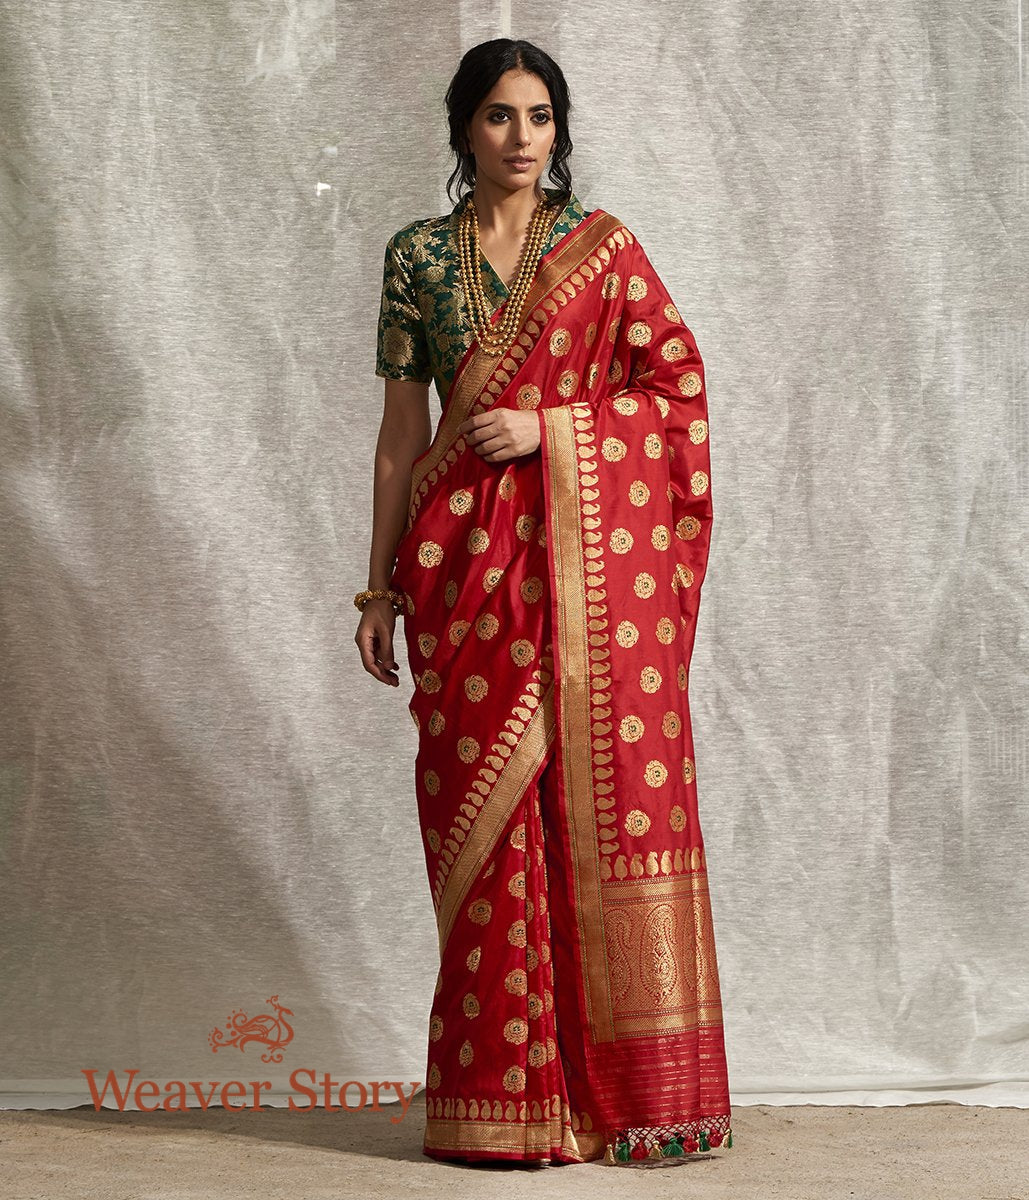 Handwoven Red Kadhwa Booti Banarasi Saree with Green Meenakari